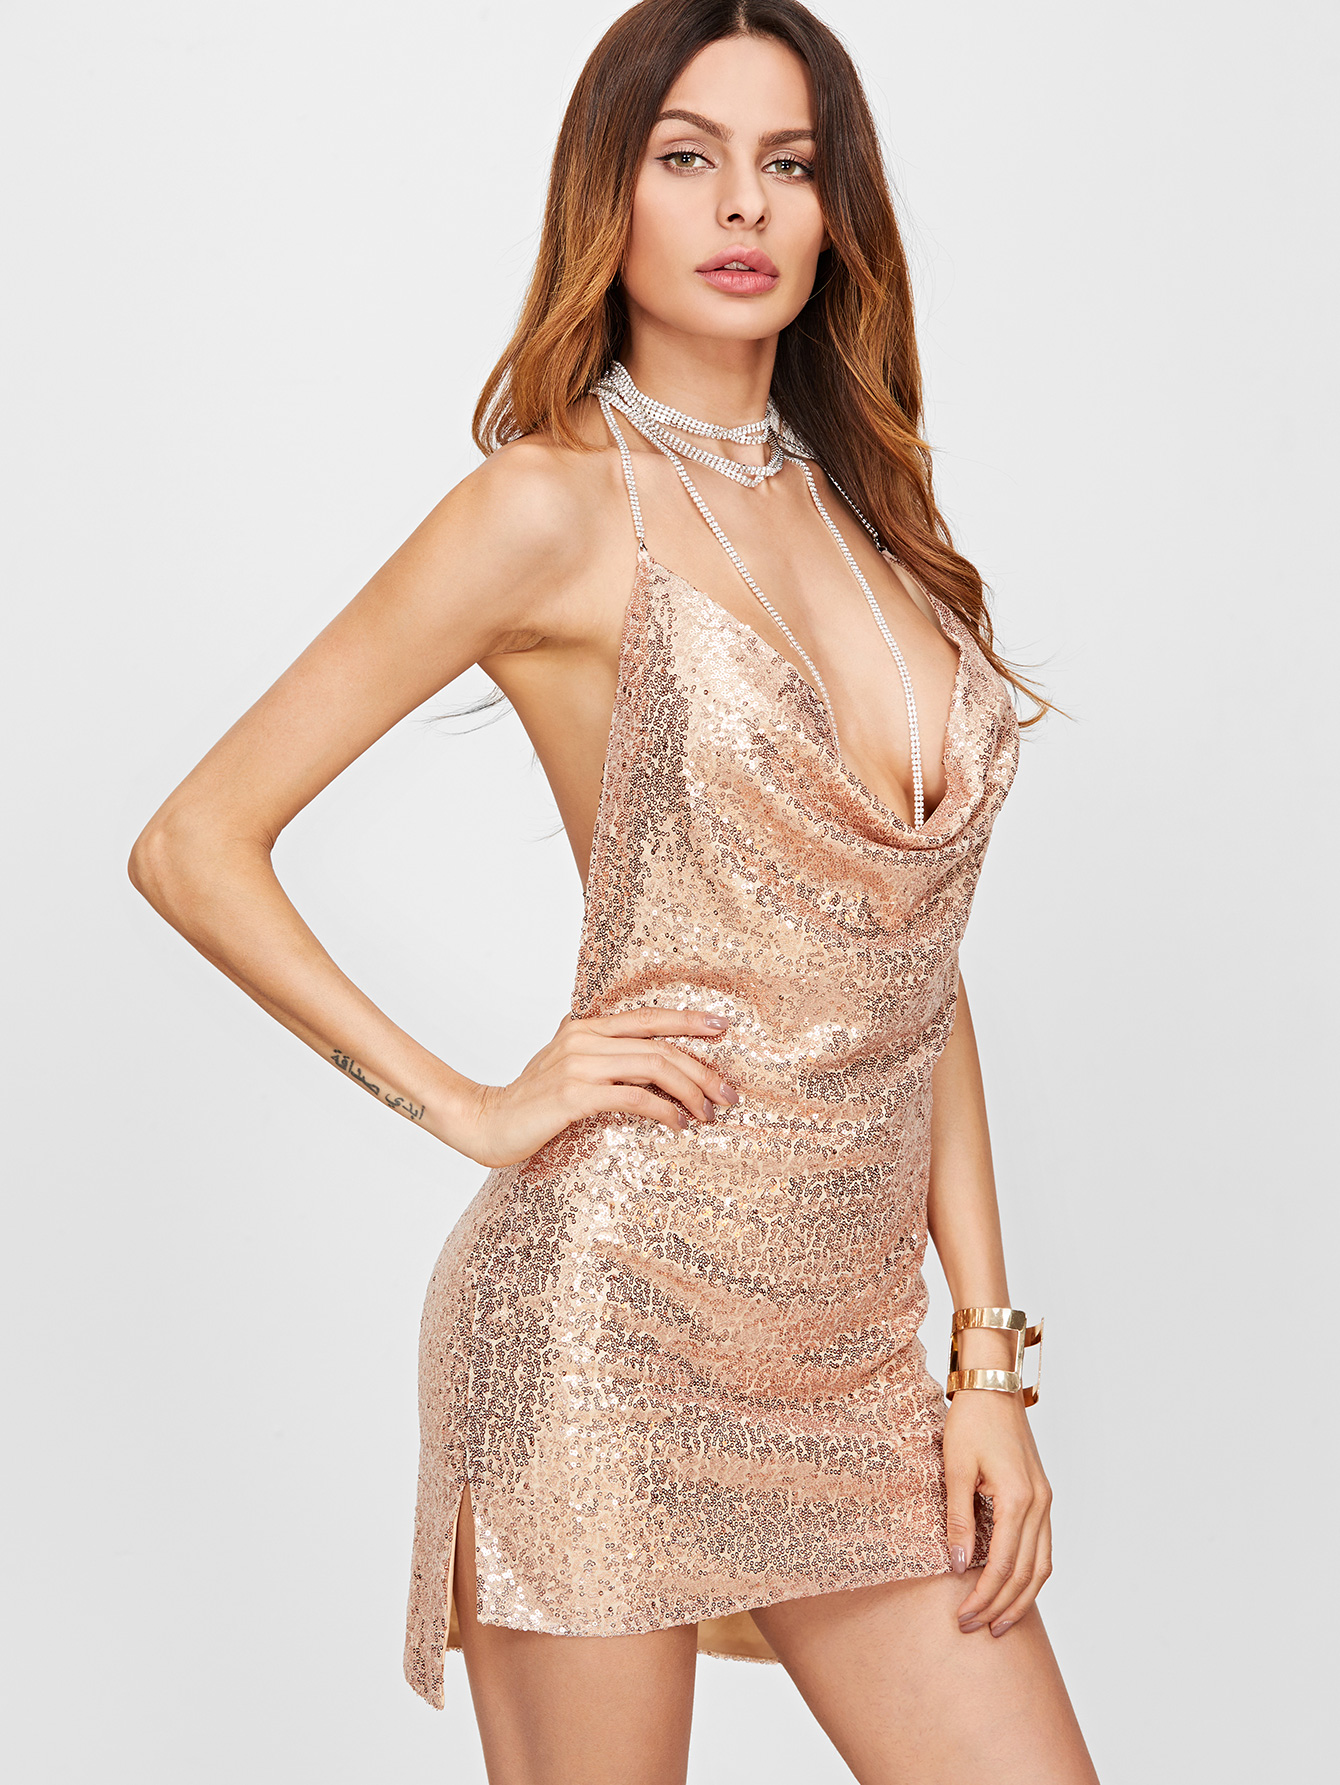 Sequin Sexy dresses pictures exclusive photo